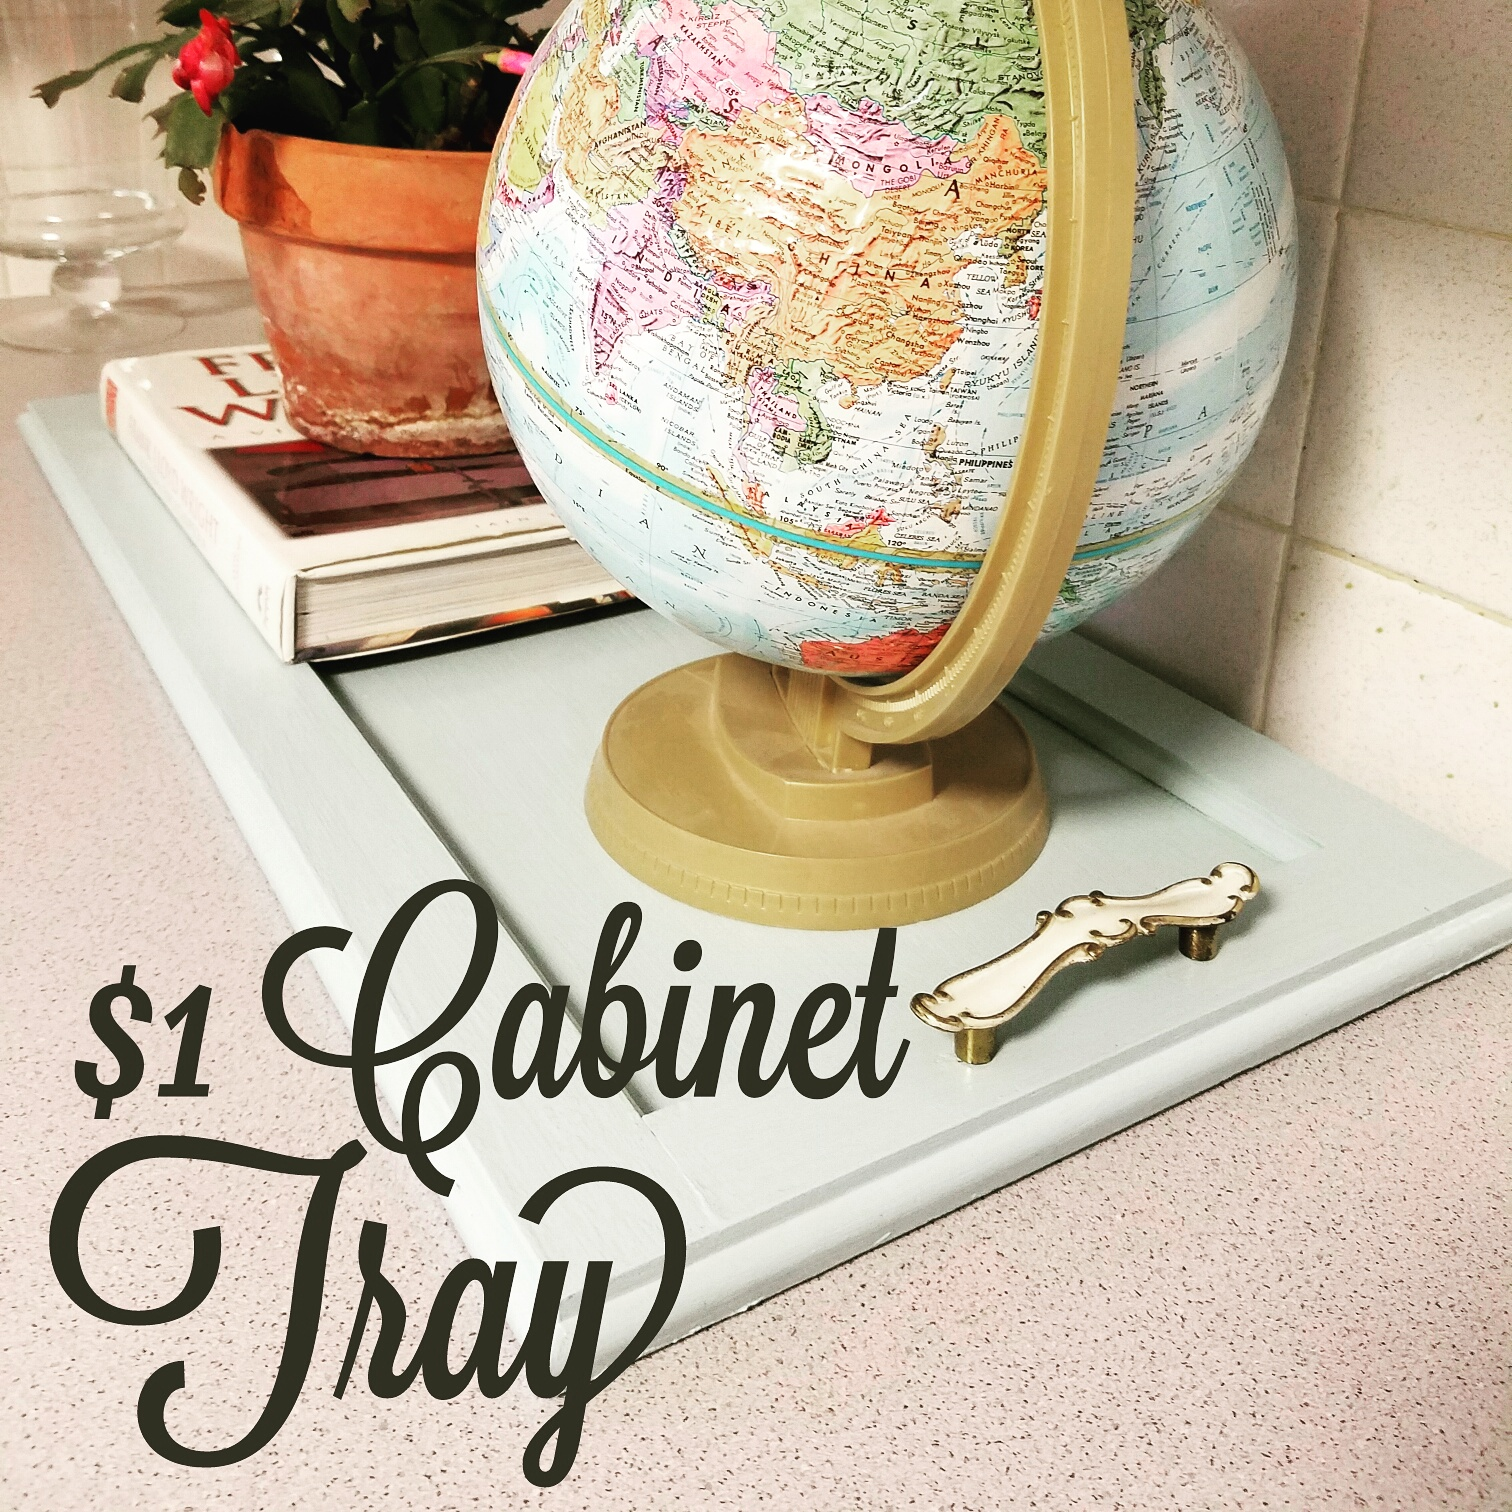 The $1 Cabinet Tray